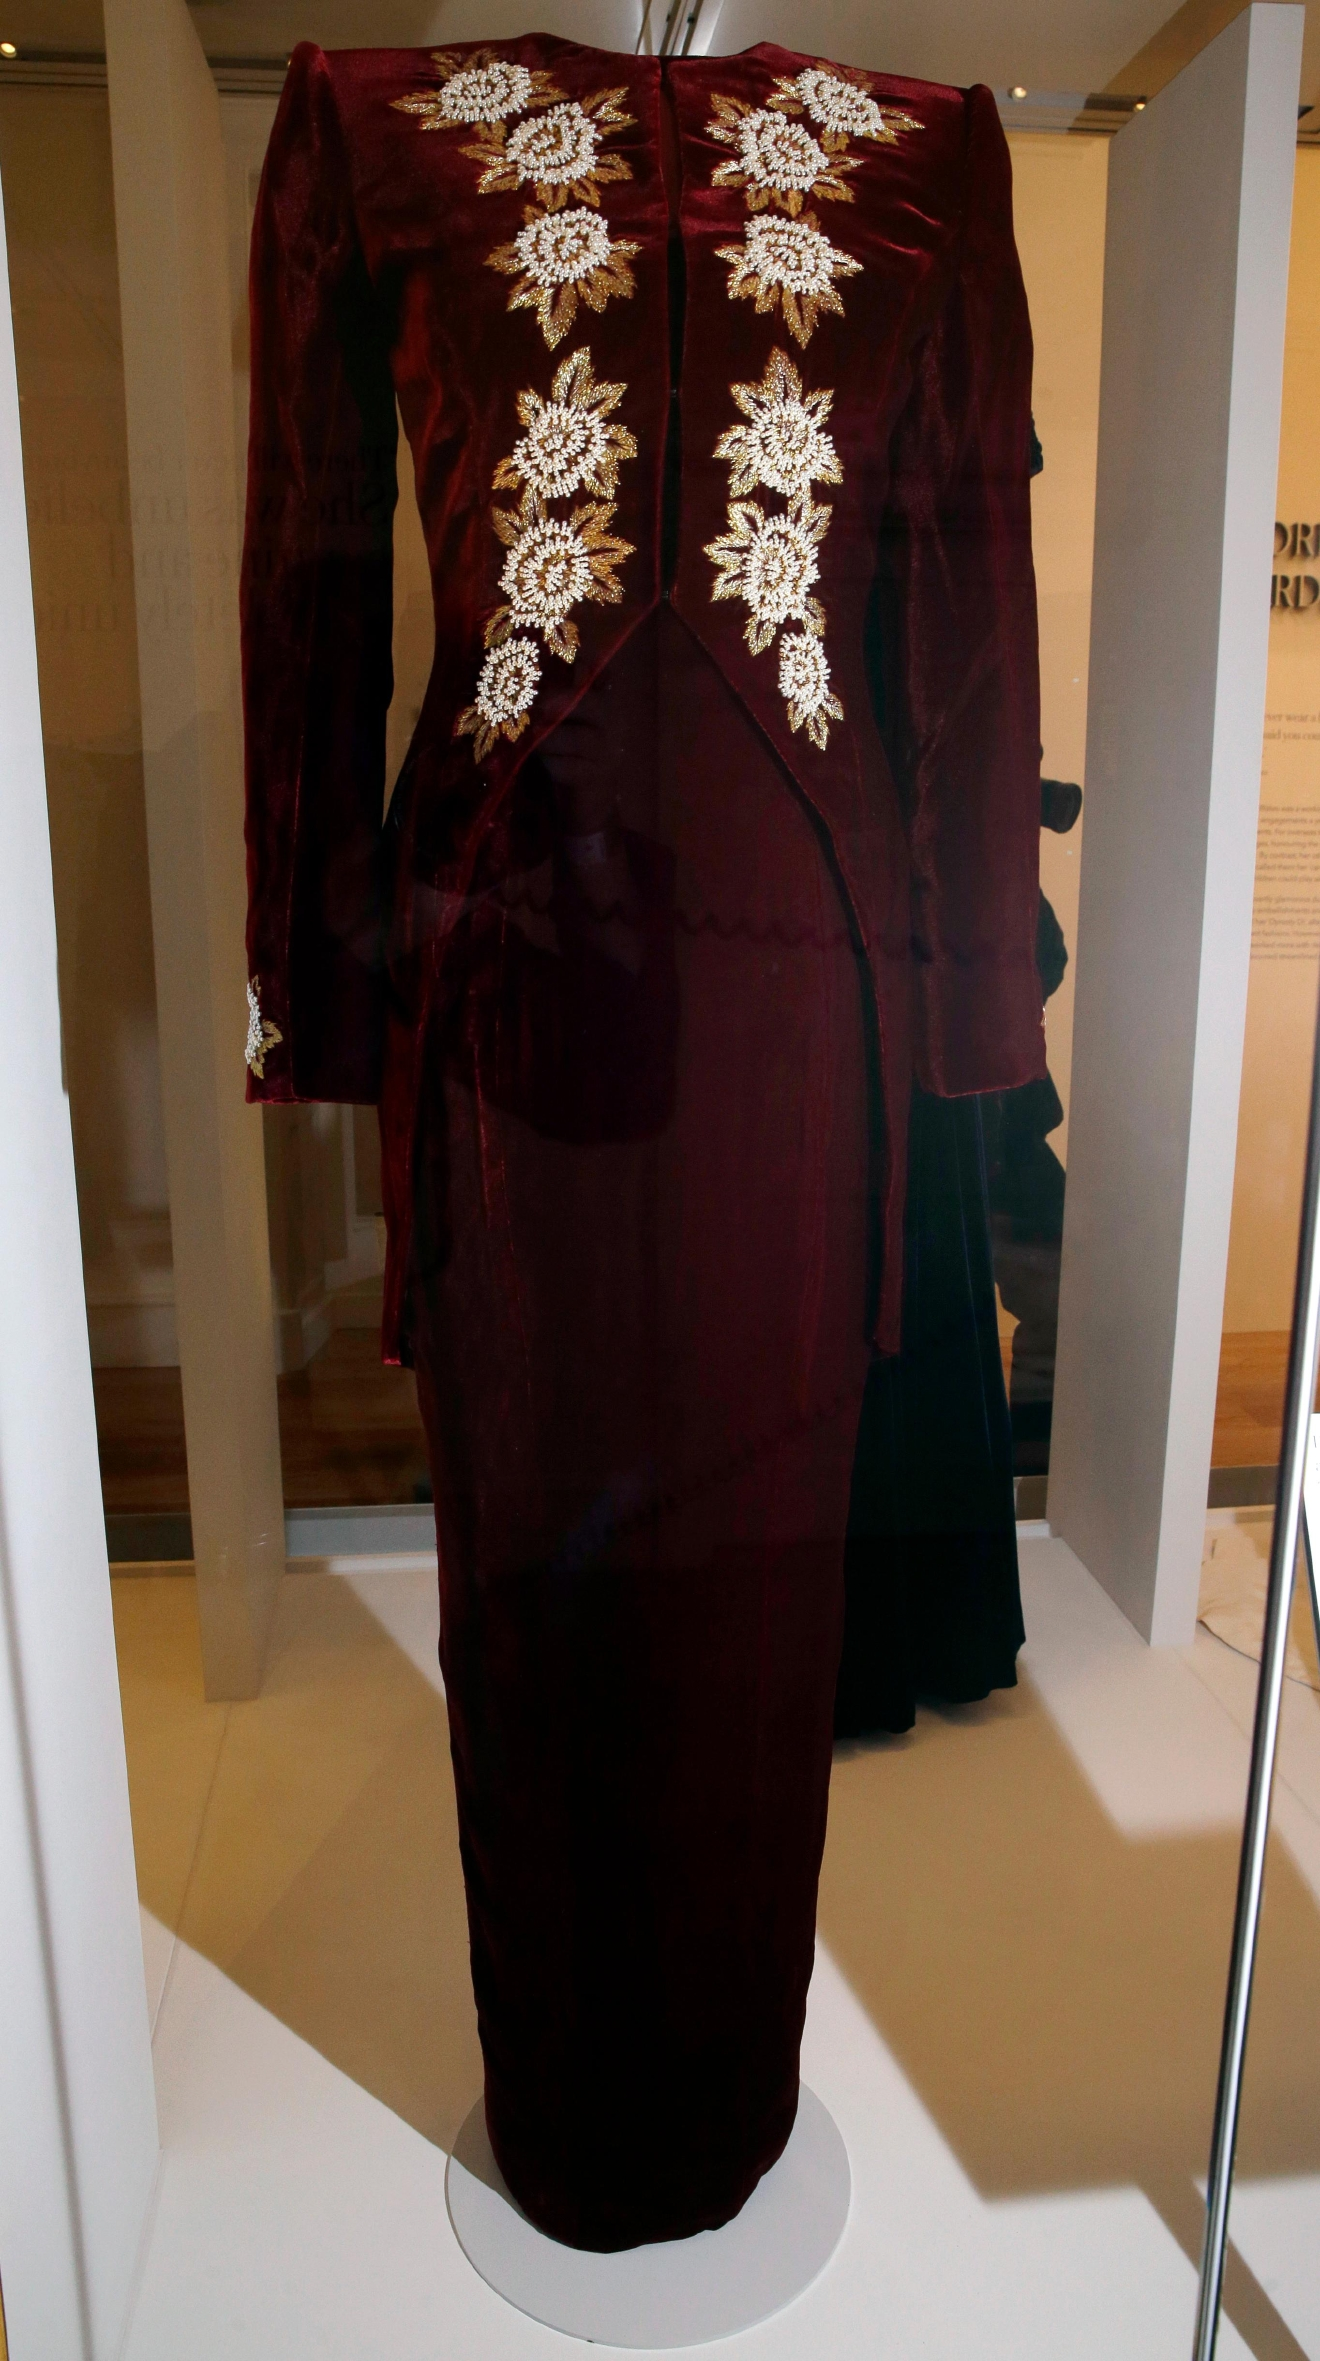 "A burgundy silk velvet evening dress by Catherine walker and worn by Diana, Princess of Wales in 1990 at a film premier and on an official visit to South Korea in 1992, is on display during a media preview of an exhibition of 25 dresses and outfits worn by Diana entitled ""Diana: Her Fashion Story"" at Kensington Palace in London, Wednesday, Feb. 22, 2017. (AP Photo/Alastair Grant)"